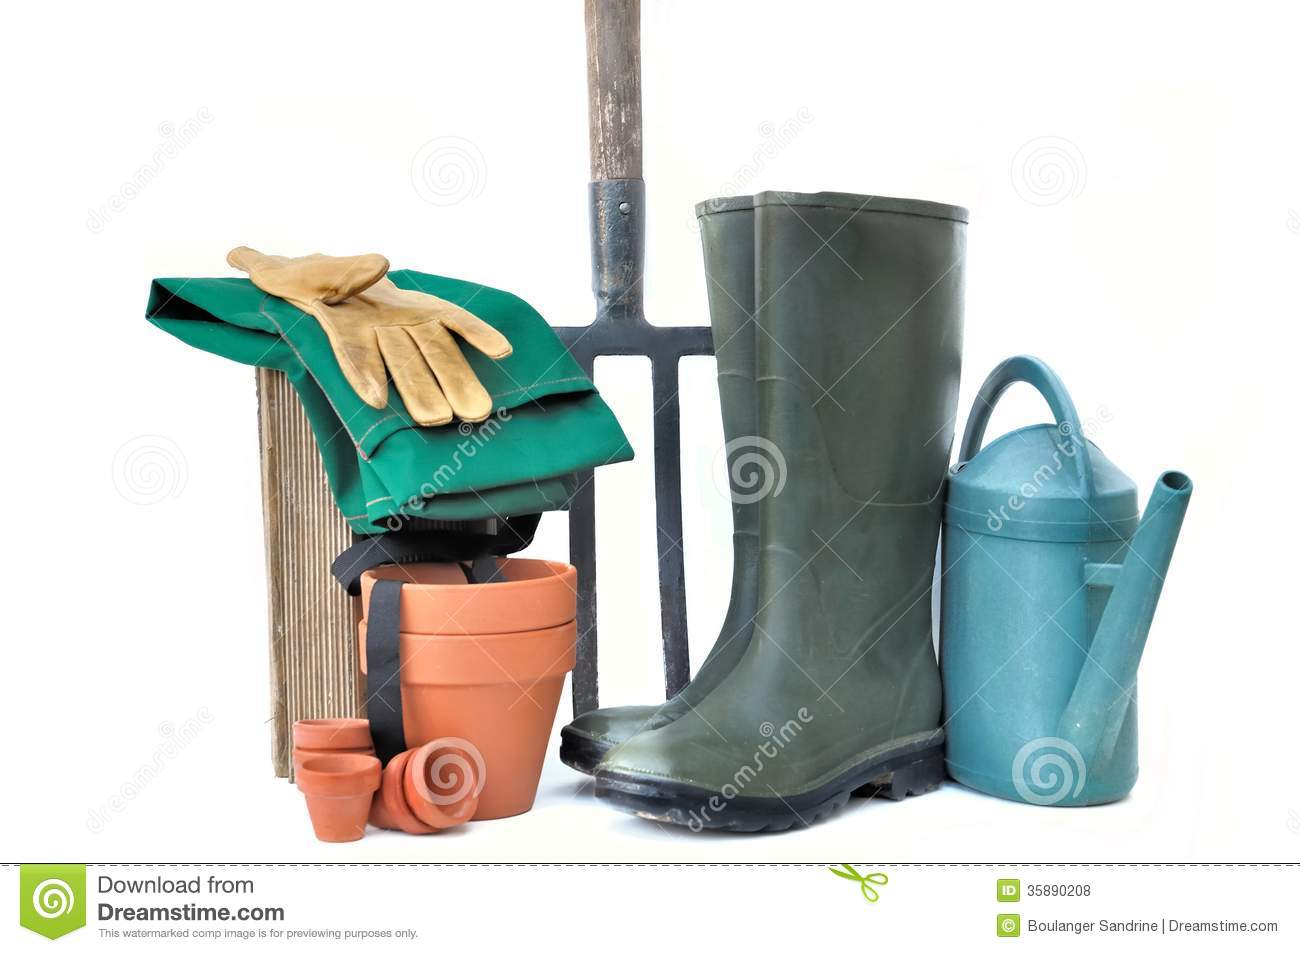 Gardeners supply company garden supplies and gardening for Tools and equipment in planting